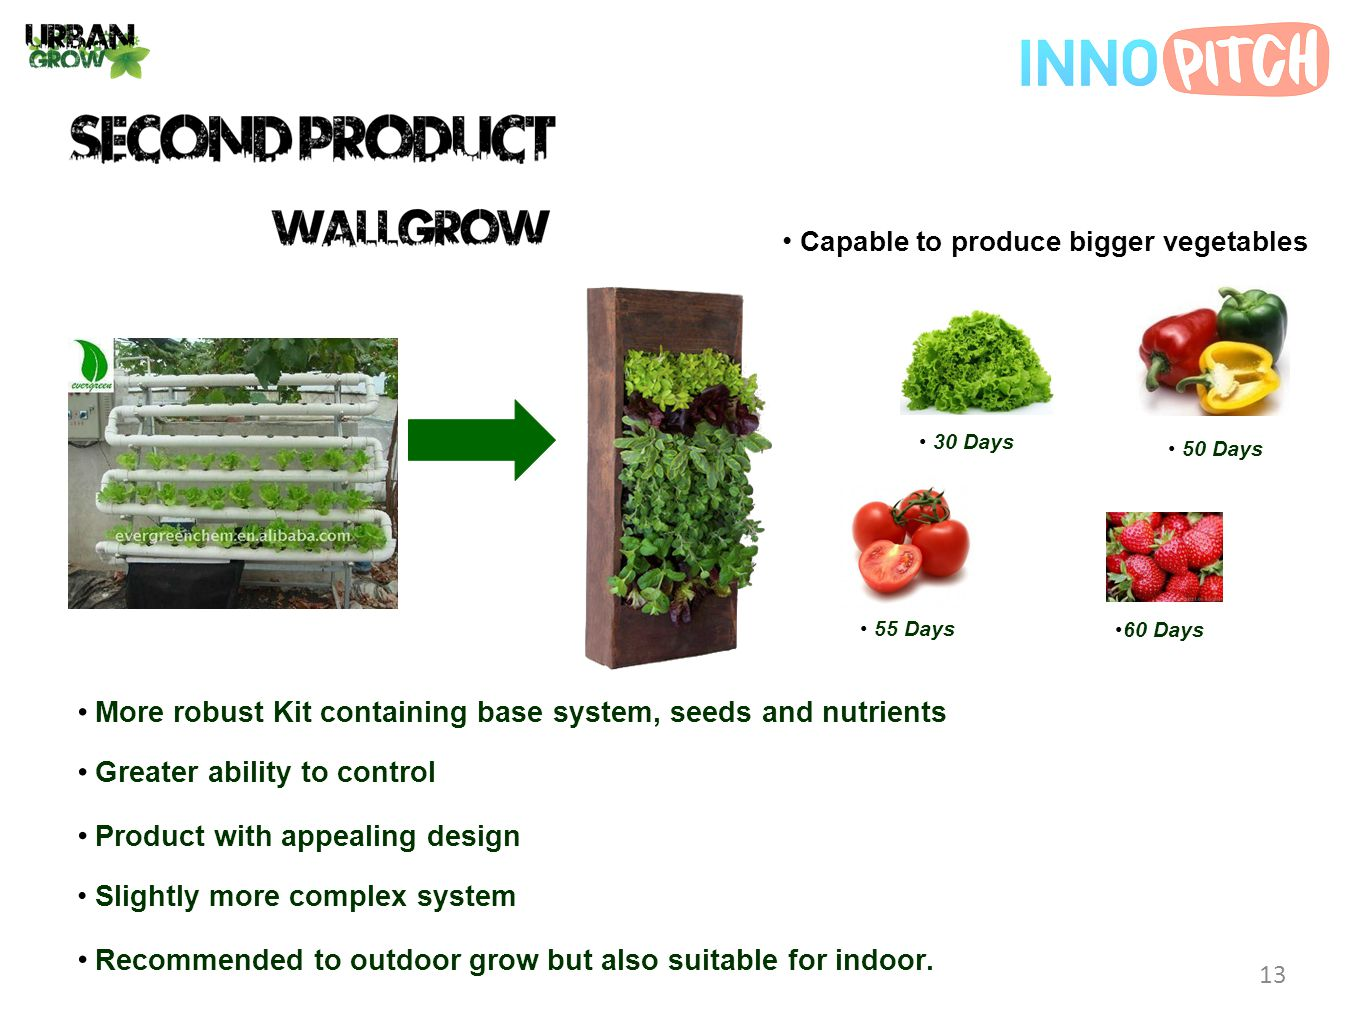 Slightly more complex system Capable to produce bigger vegetables Product with appealing design More robust Kit containing base system, seeds and nutrients Greater ability to control Recommended to outdoor grow but also suitable for indoor.